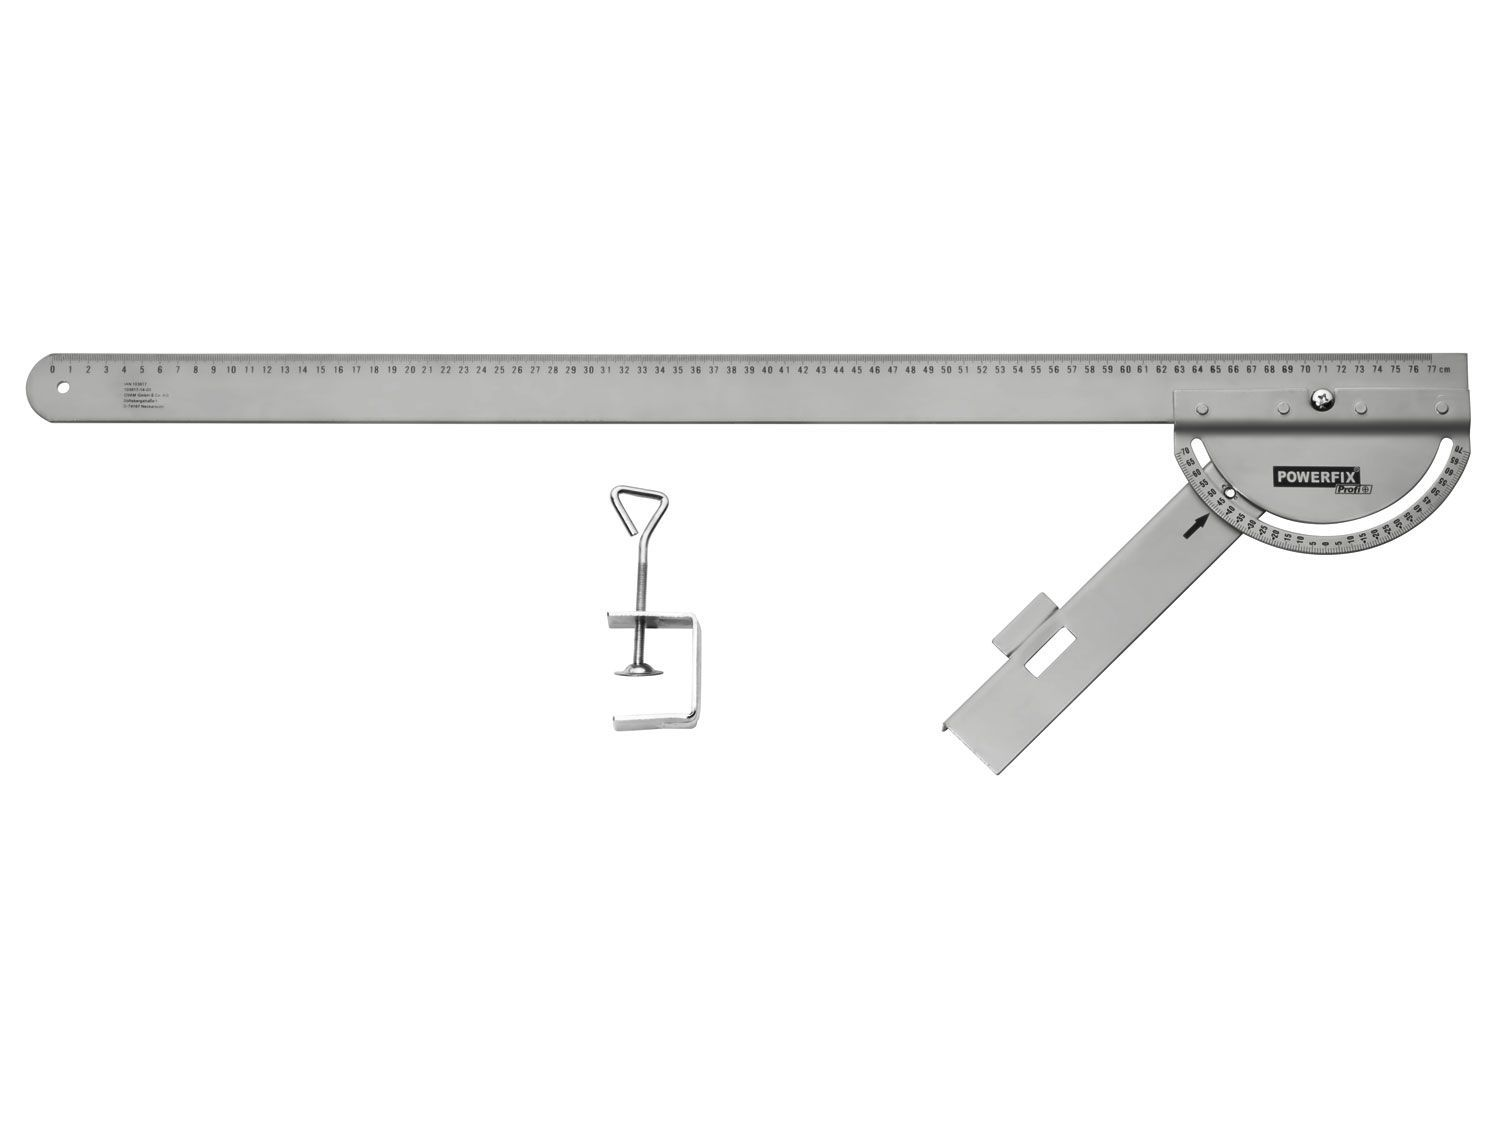 Powerfix measuring tool lidl germany tools for Smerigliatrice angolare lidl